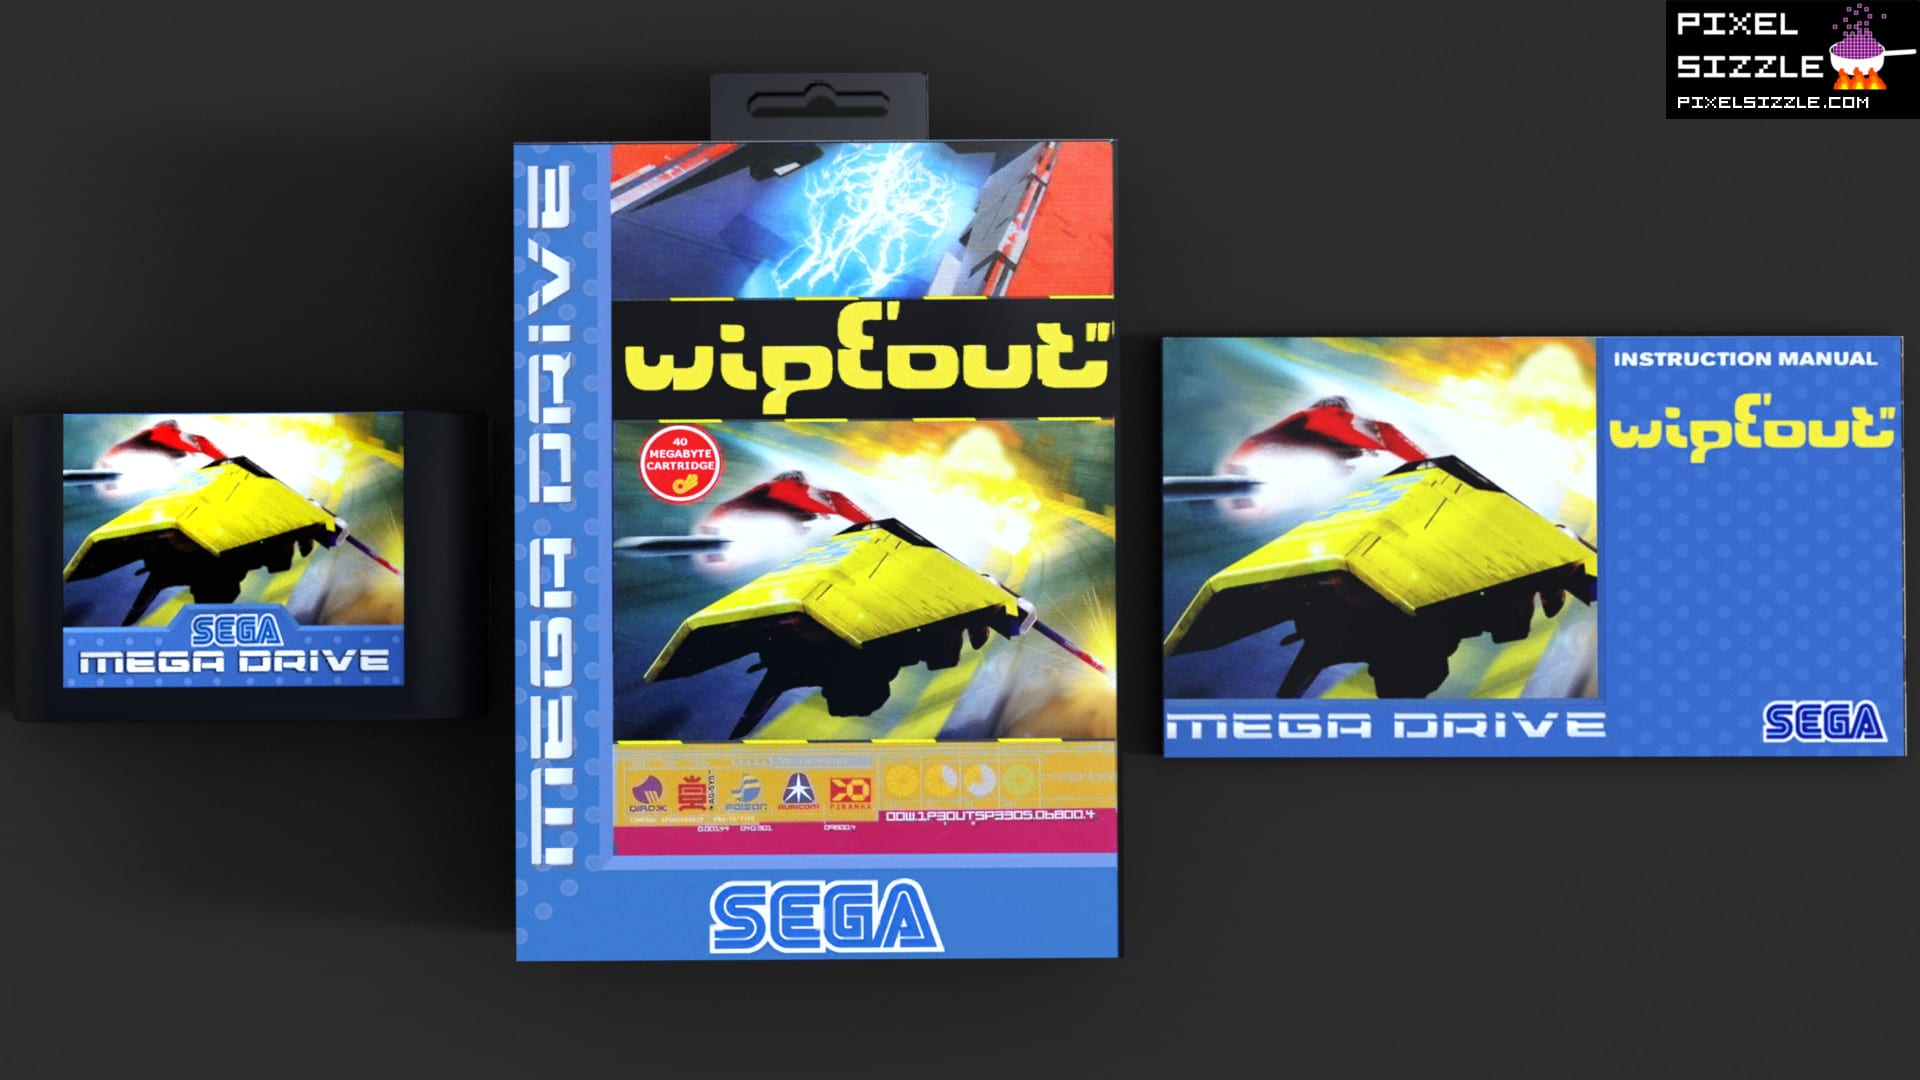 Retro Games. Wipeout. Sega Genesis